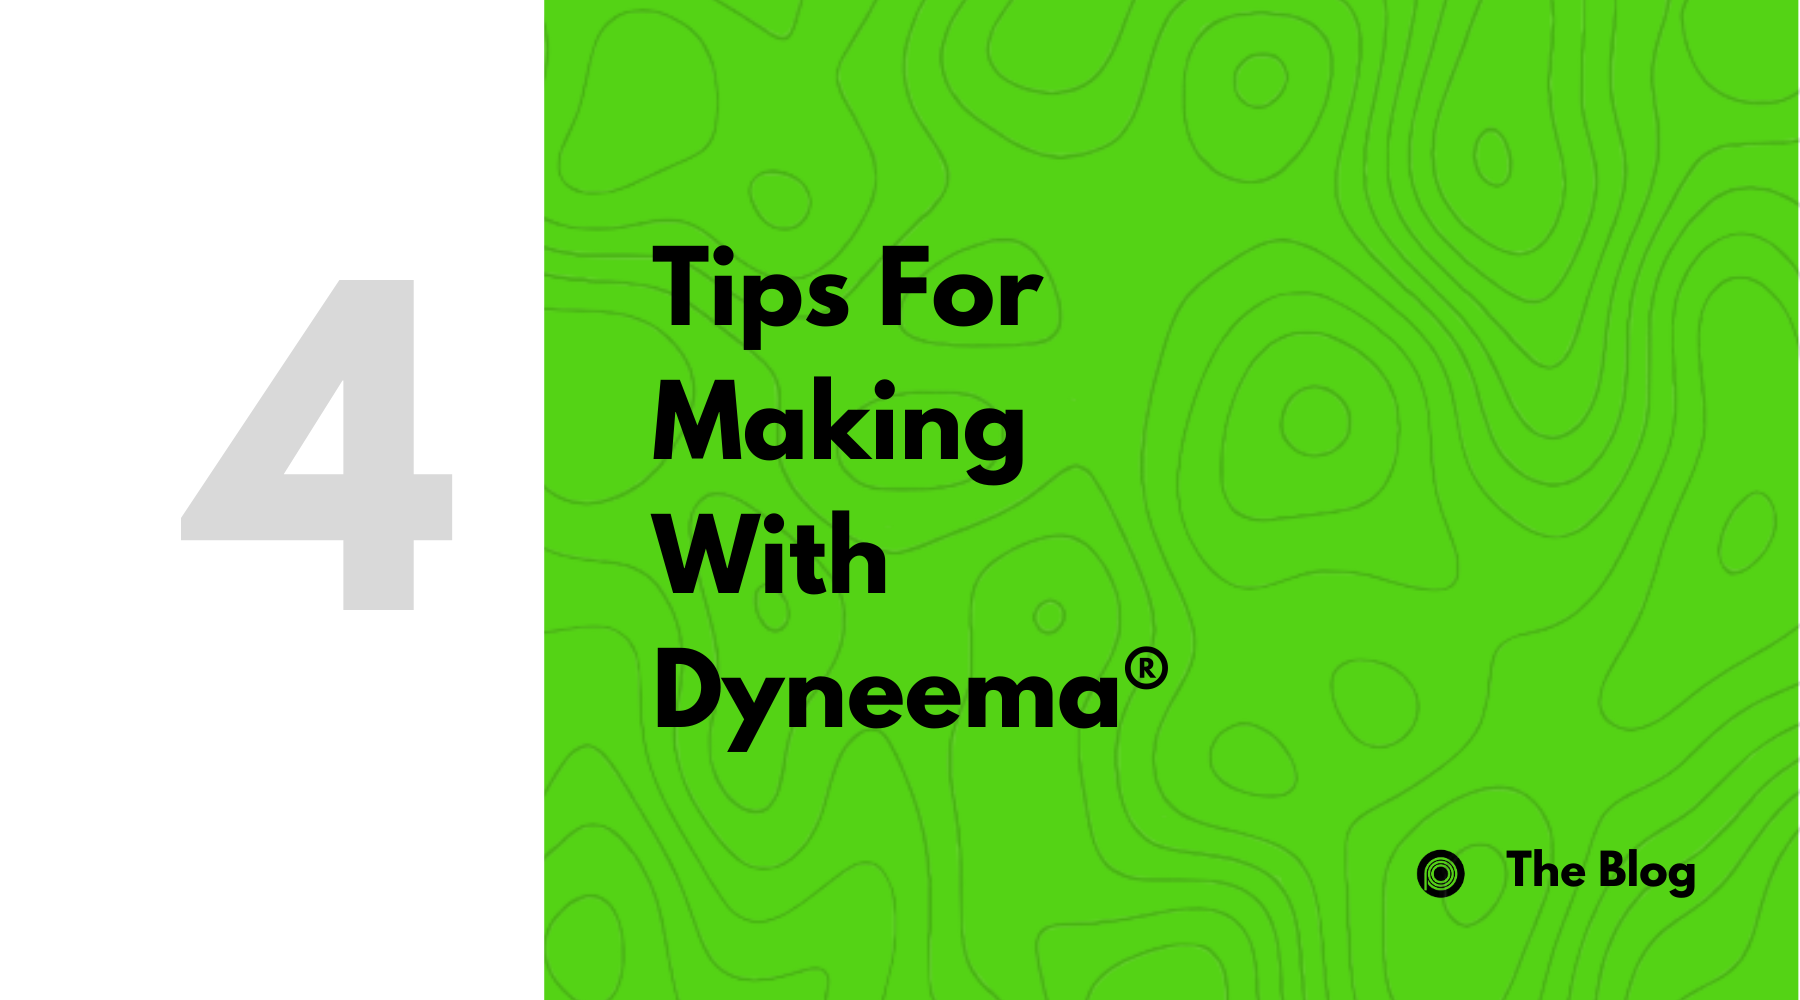 Tips for Making with Dyneema